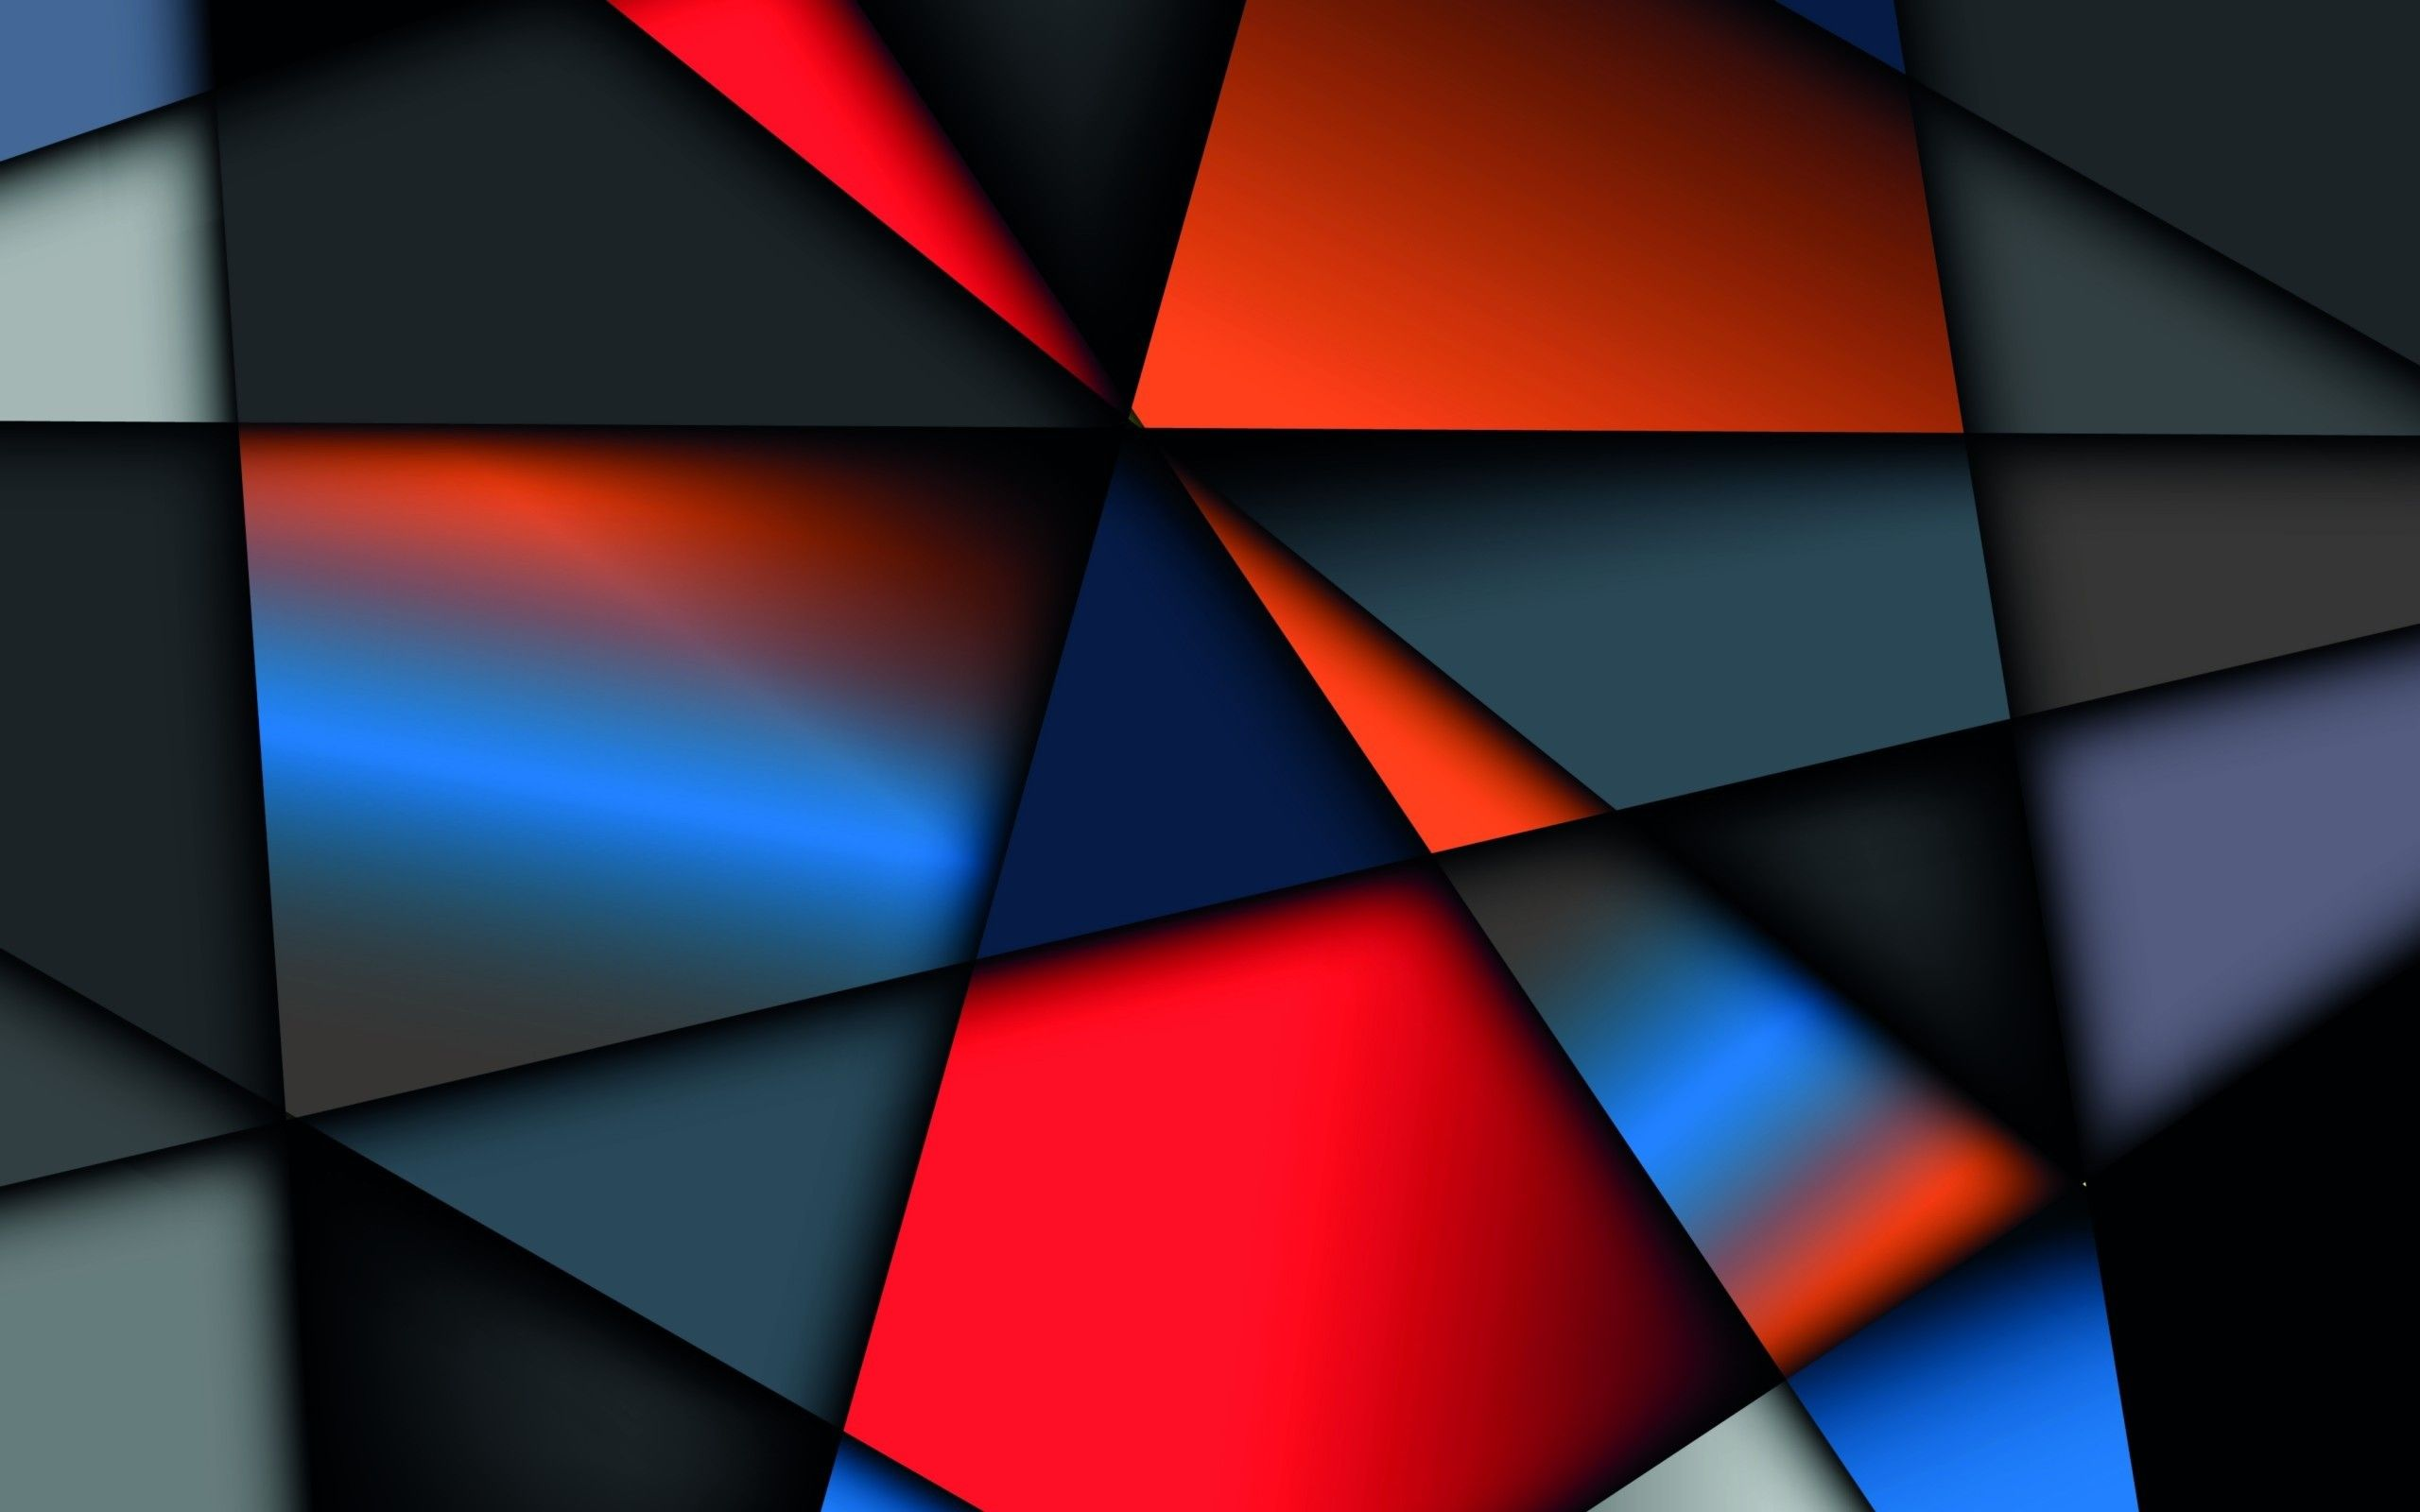 4k 3d Abstract Wallpapers Top Free 4k 3d Abstract